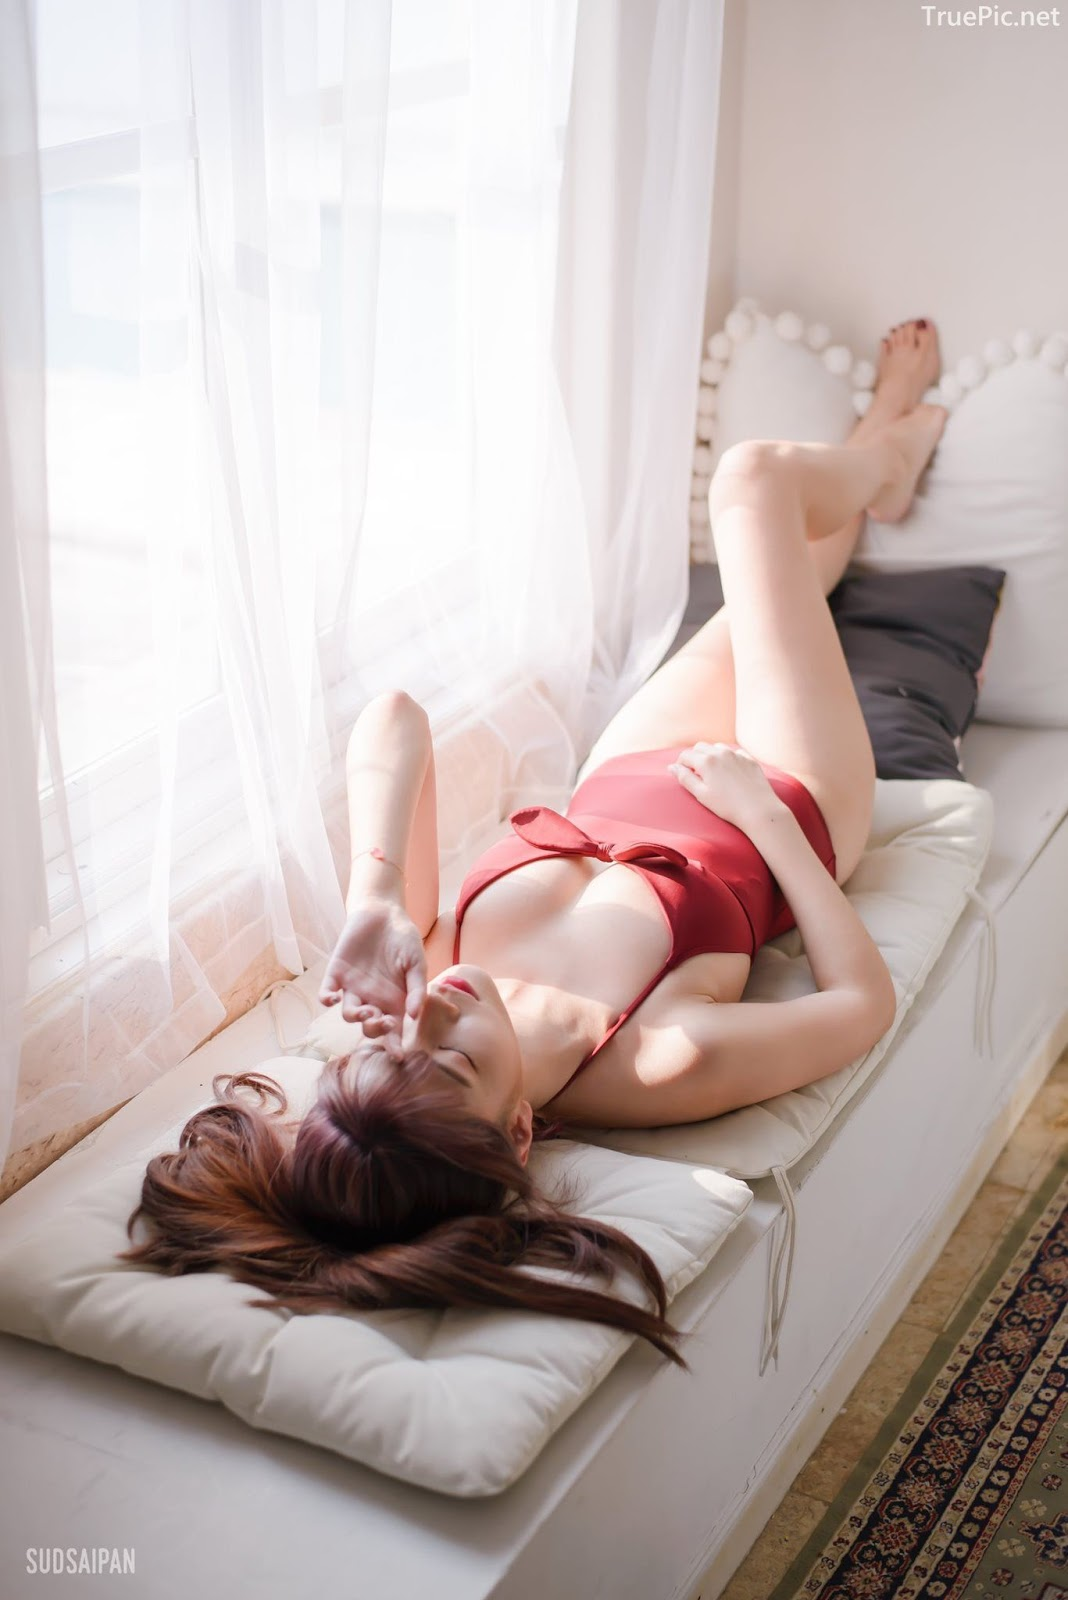 Chinese hot streaming girl - 簡欣汝 - Red Swimming Suit - TruePic.net - Picture 8